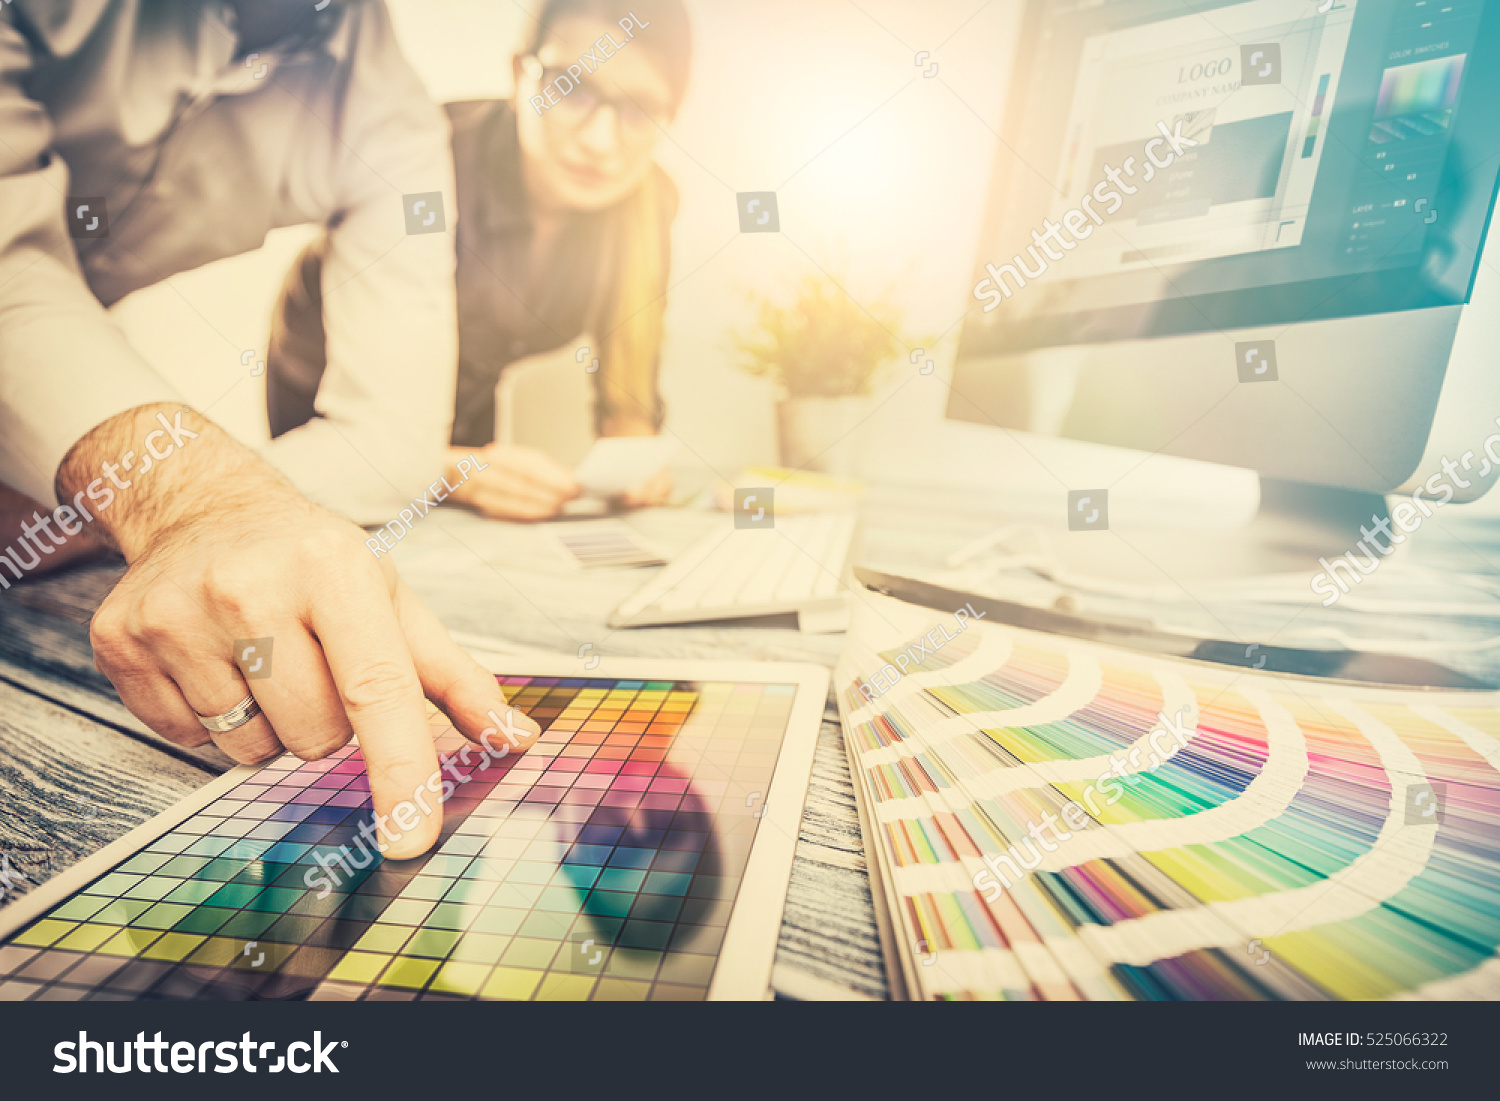 designer graphic creative creativity work tablet designing design imac artist coloring colour ideas style networking human notebook pattern place concept - stock image #525066322 - 123PhotoFree.com